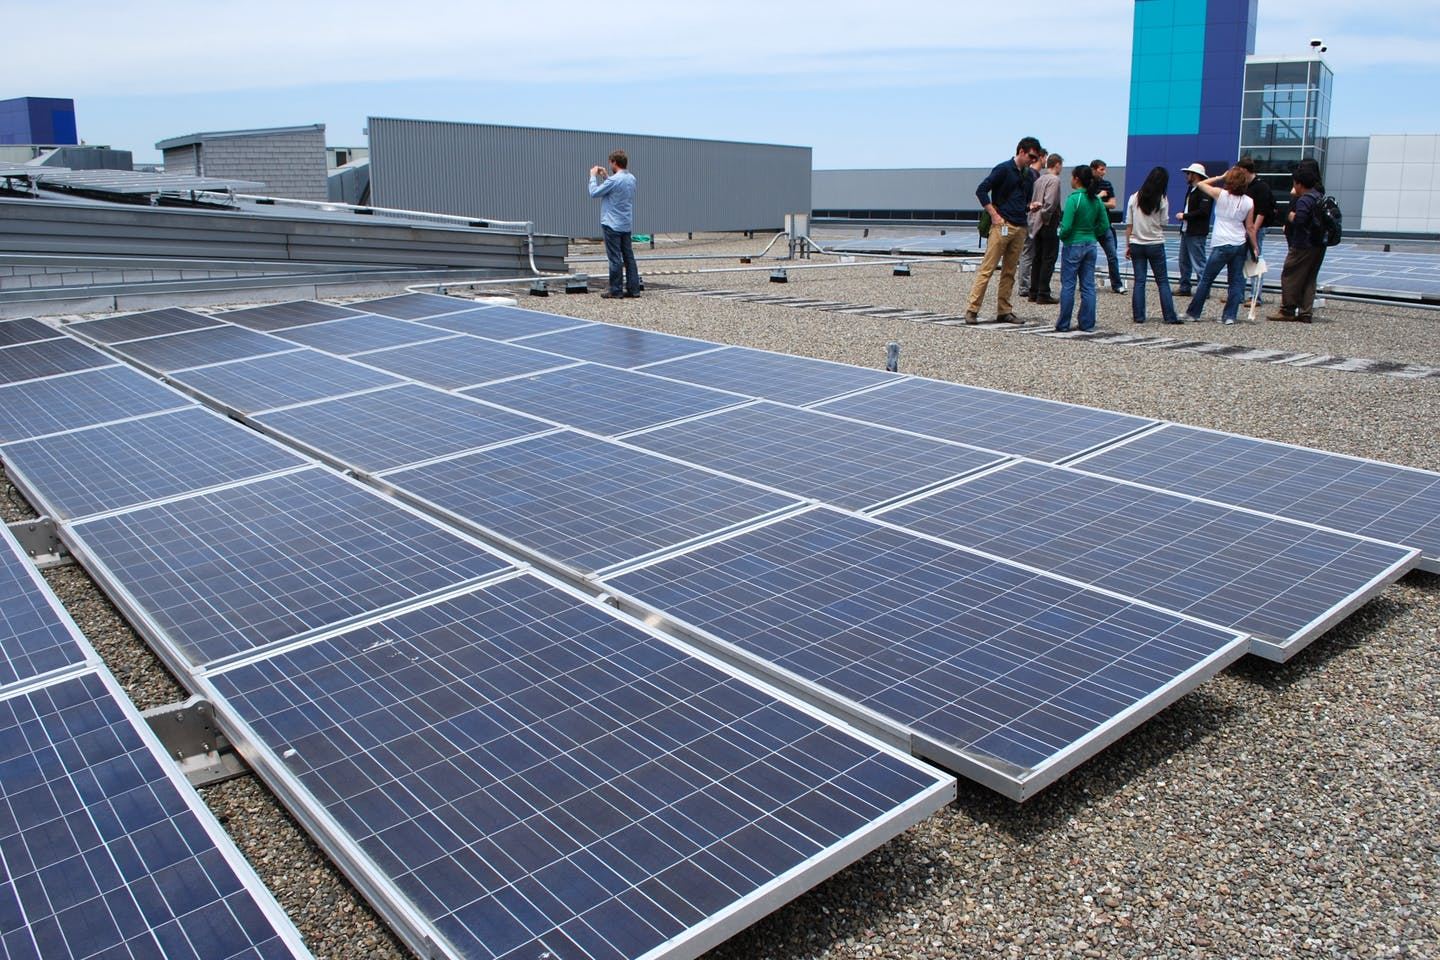 Rooftop solar panels at the Google office in California